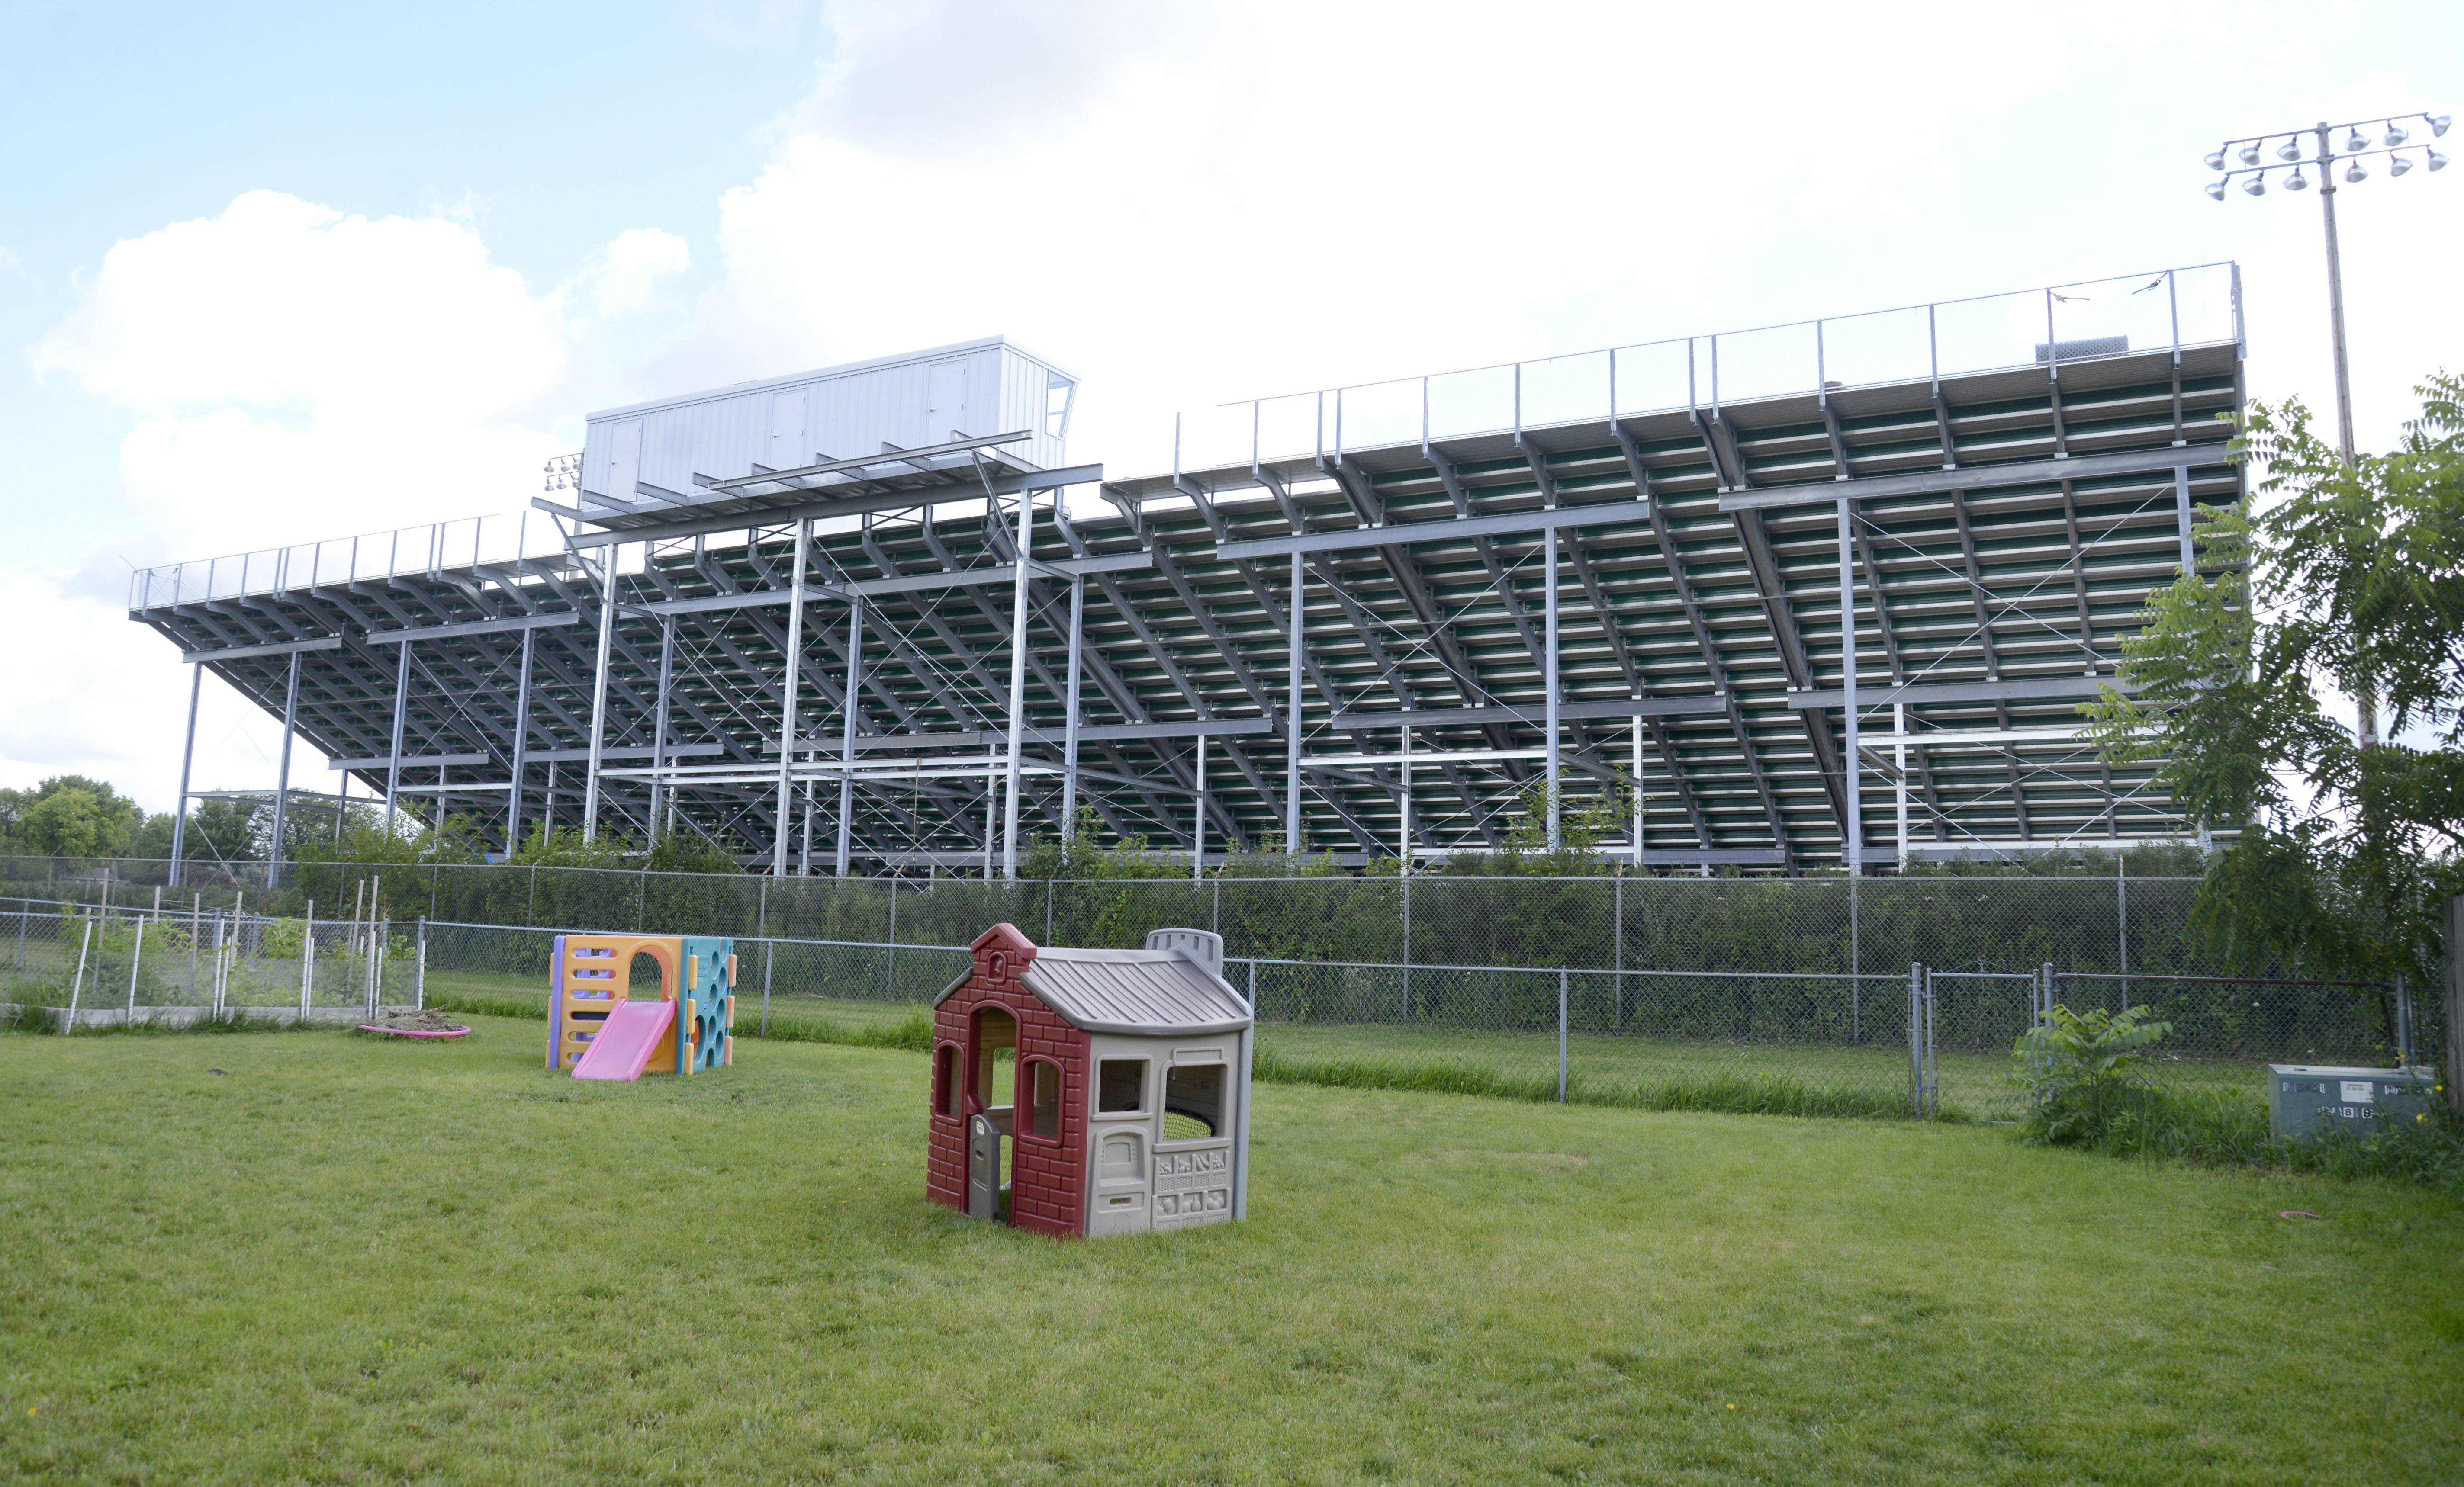 Appellate court: Dist. 155 bleachers needed city permission